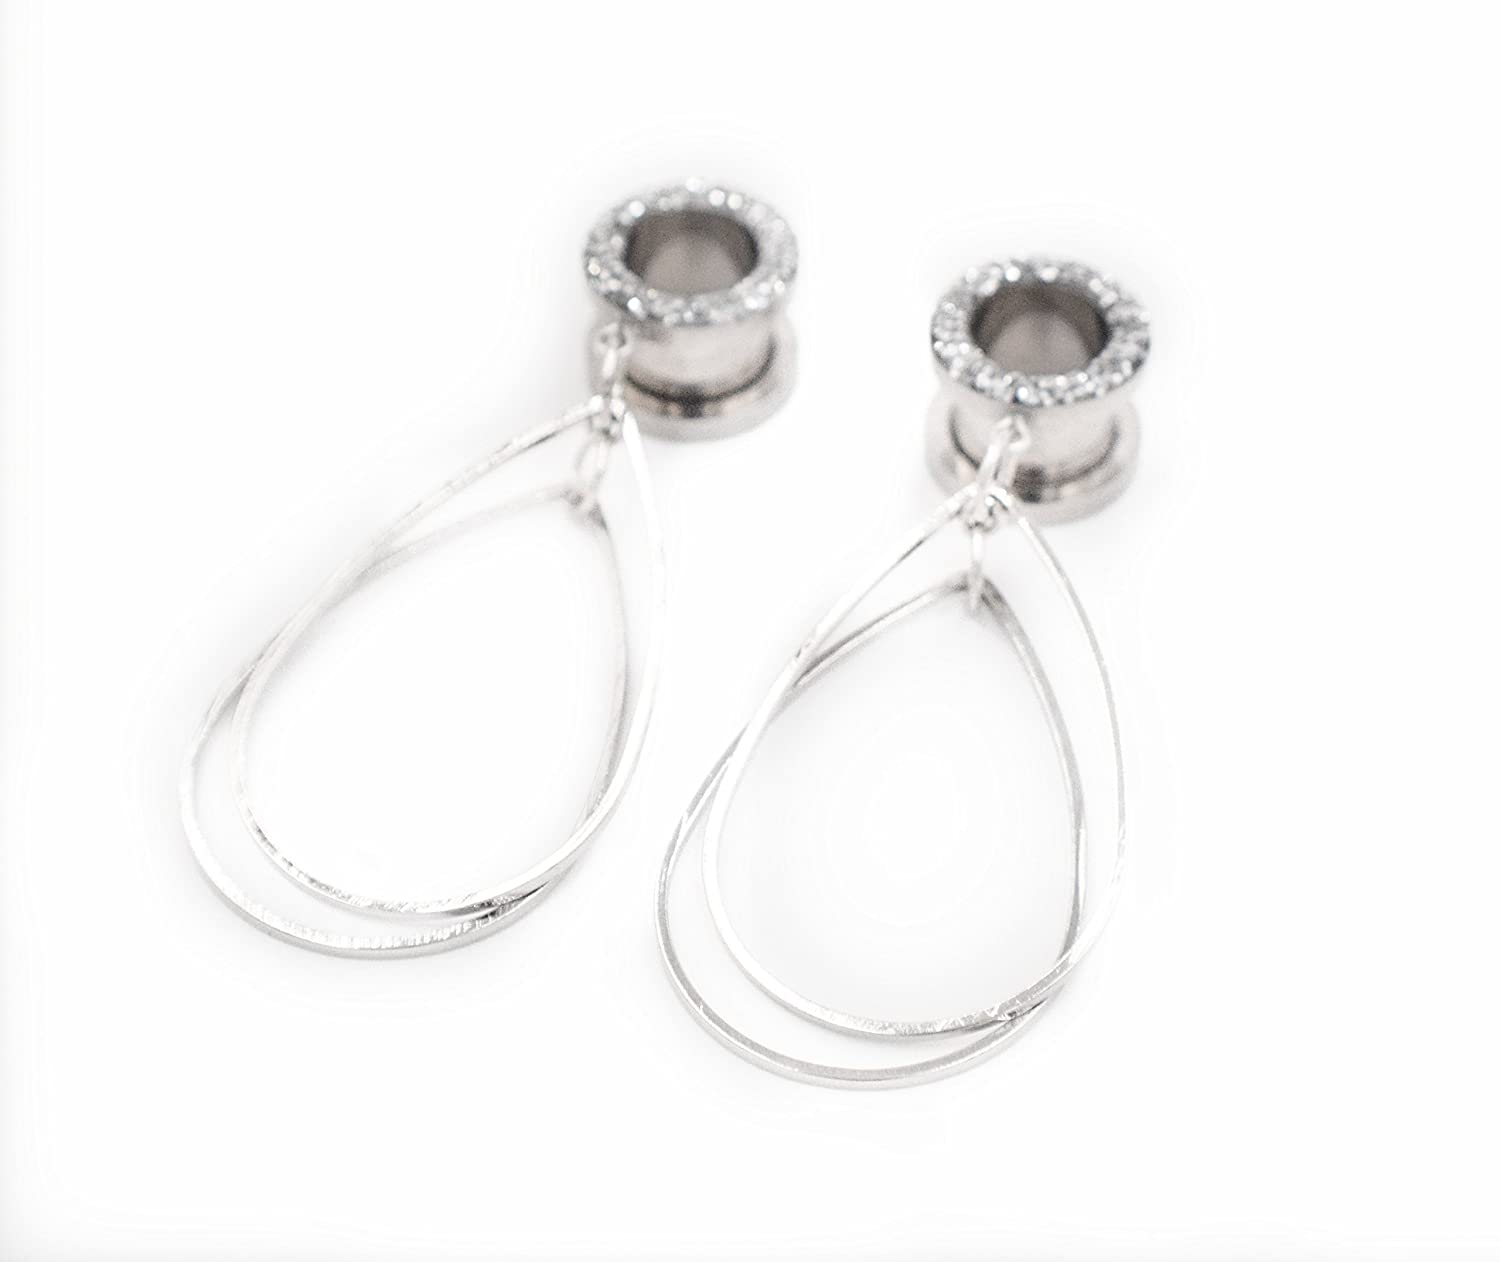 Handmade Silver Sparkle Tunnel Teardrop Dangle Plugs - 8g, 6g, 4g, 2g, 0g, 00g, 1/2, 9/16, 5/8, 11/16, 3/4, 7/8, 1 inch